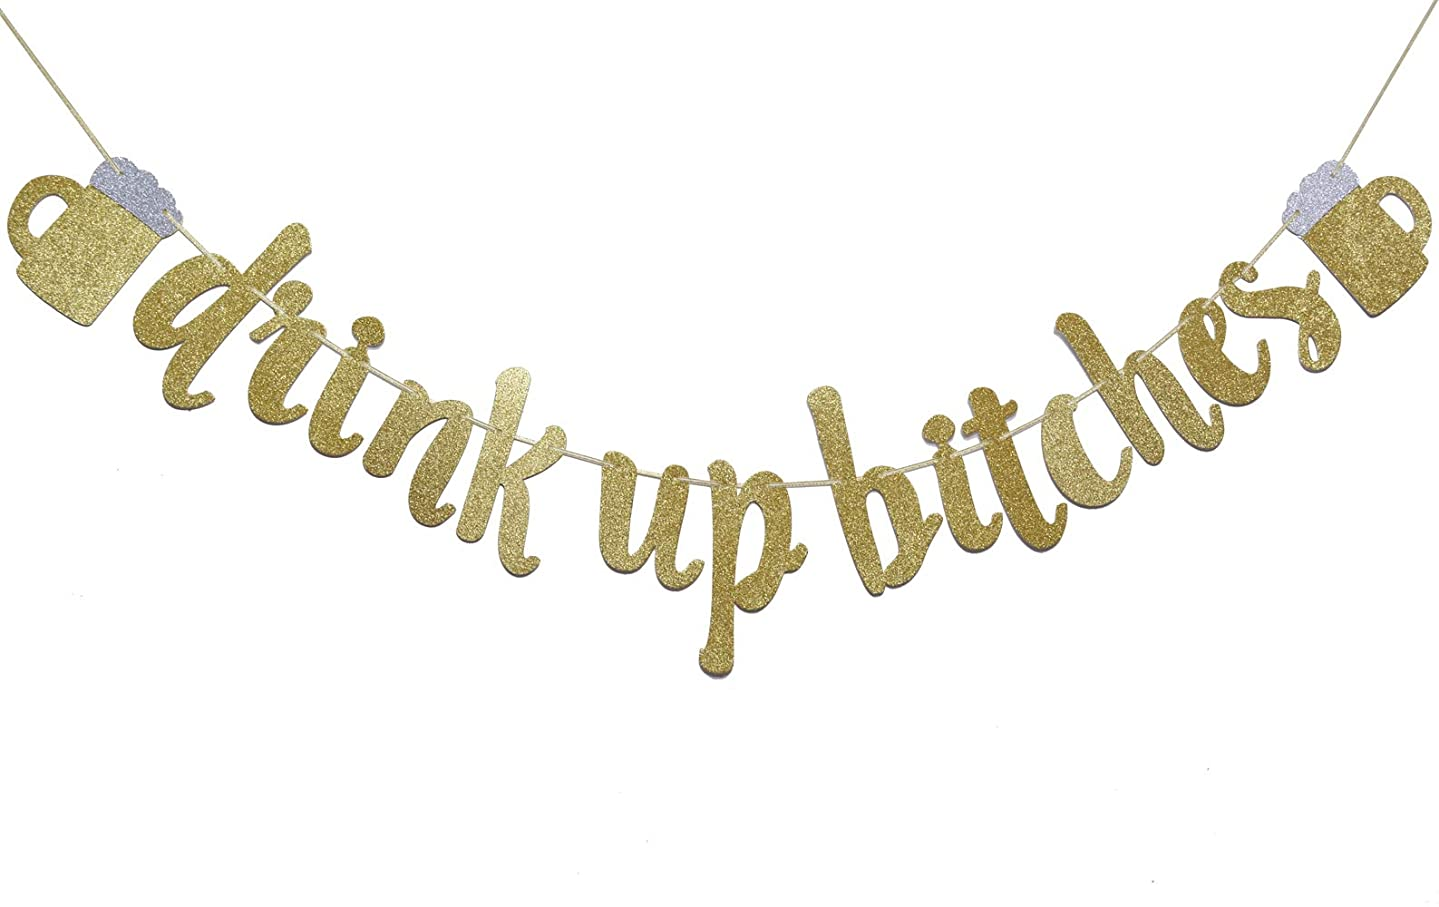 Drink Up Bitches With Champagne Glass Gold Glitter Hanging Sign Banner- Bachelorette, Engagement, Birthday Party, Bridal Shower Hen Night Girls Night Photo Props(Gold)